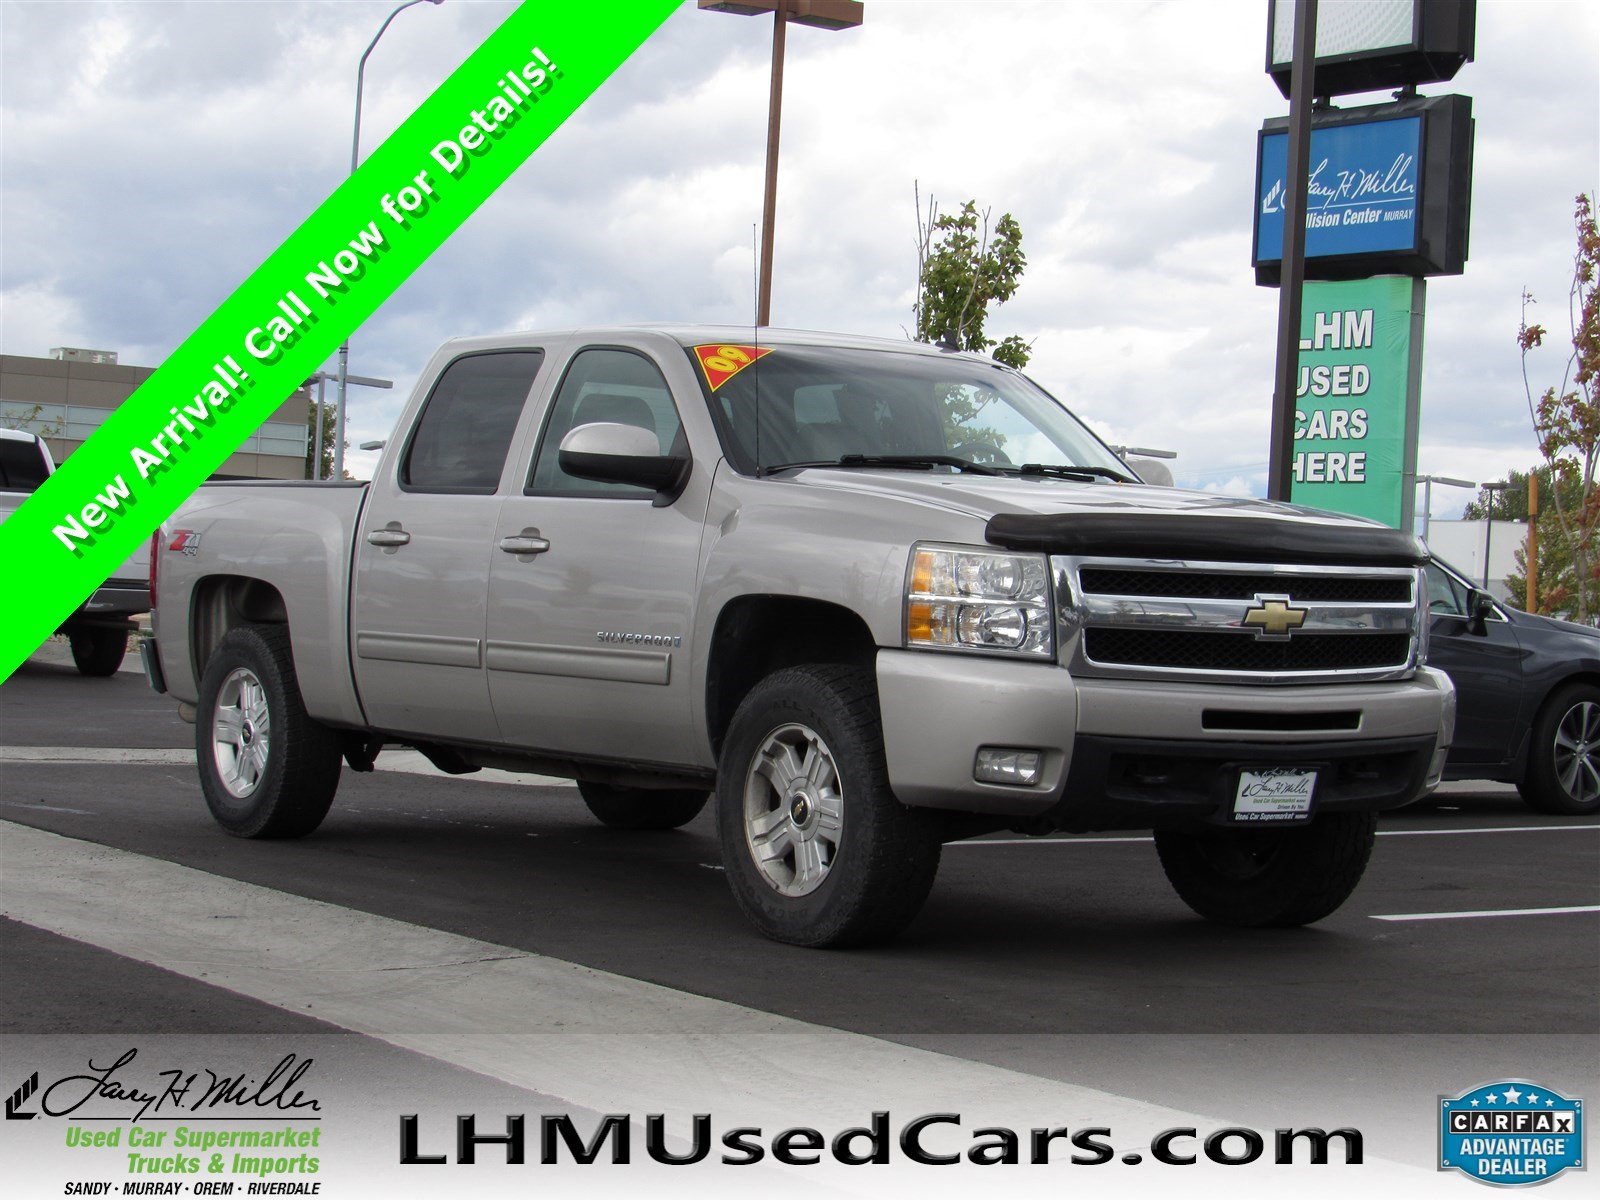 Pre Owned 2009 Chevrolet Silverado 1500 LTZ Crew Cab Pickup in